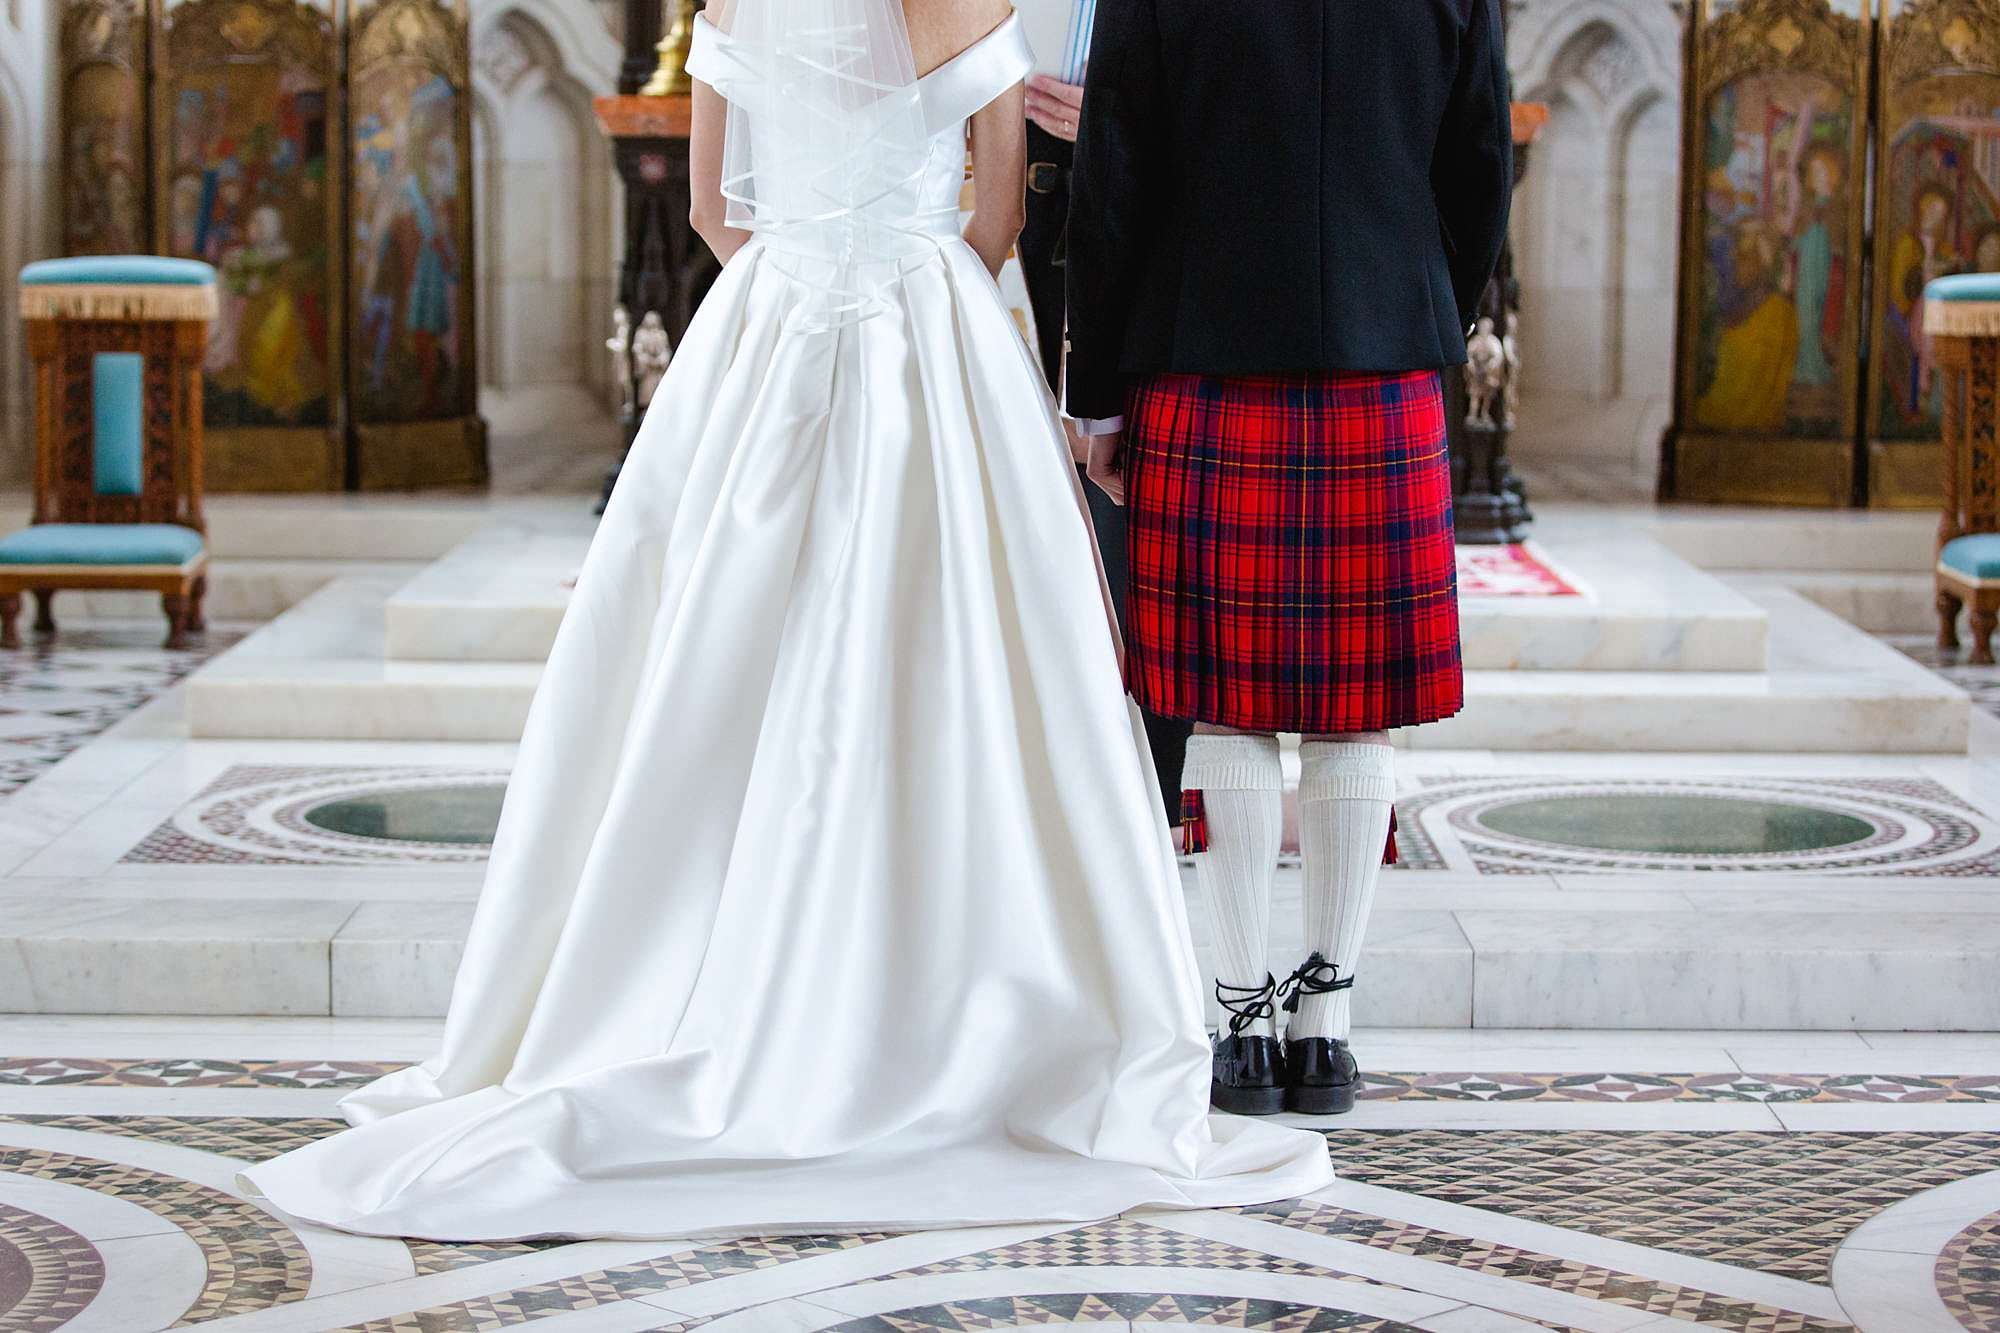 intimate wedding scotland close up detail of groom's kilt and bride's dress